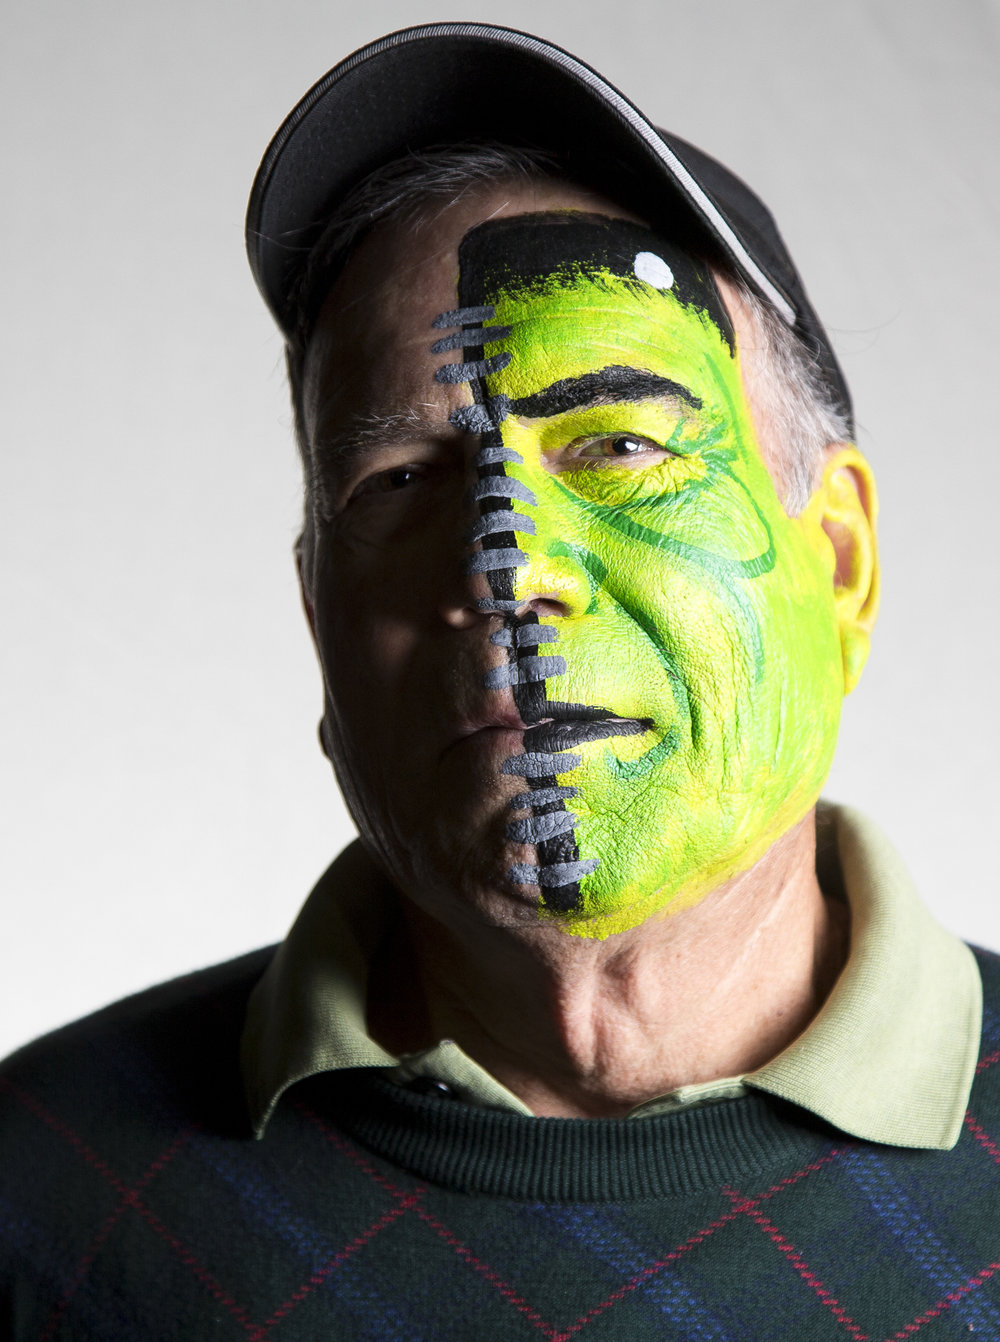 Chapel Hill resident Ed Bowen poses for a portrait with half of his face painted on Halloween in Chapel Hill Tuesday, Oct. 31, 2017. His granddaughter is the artist responsible for the face paint.